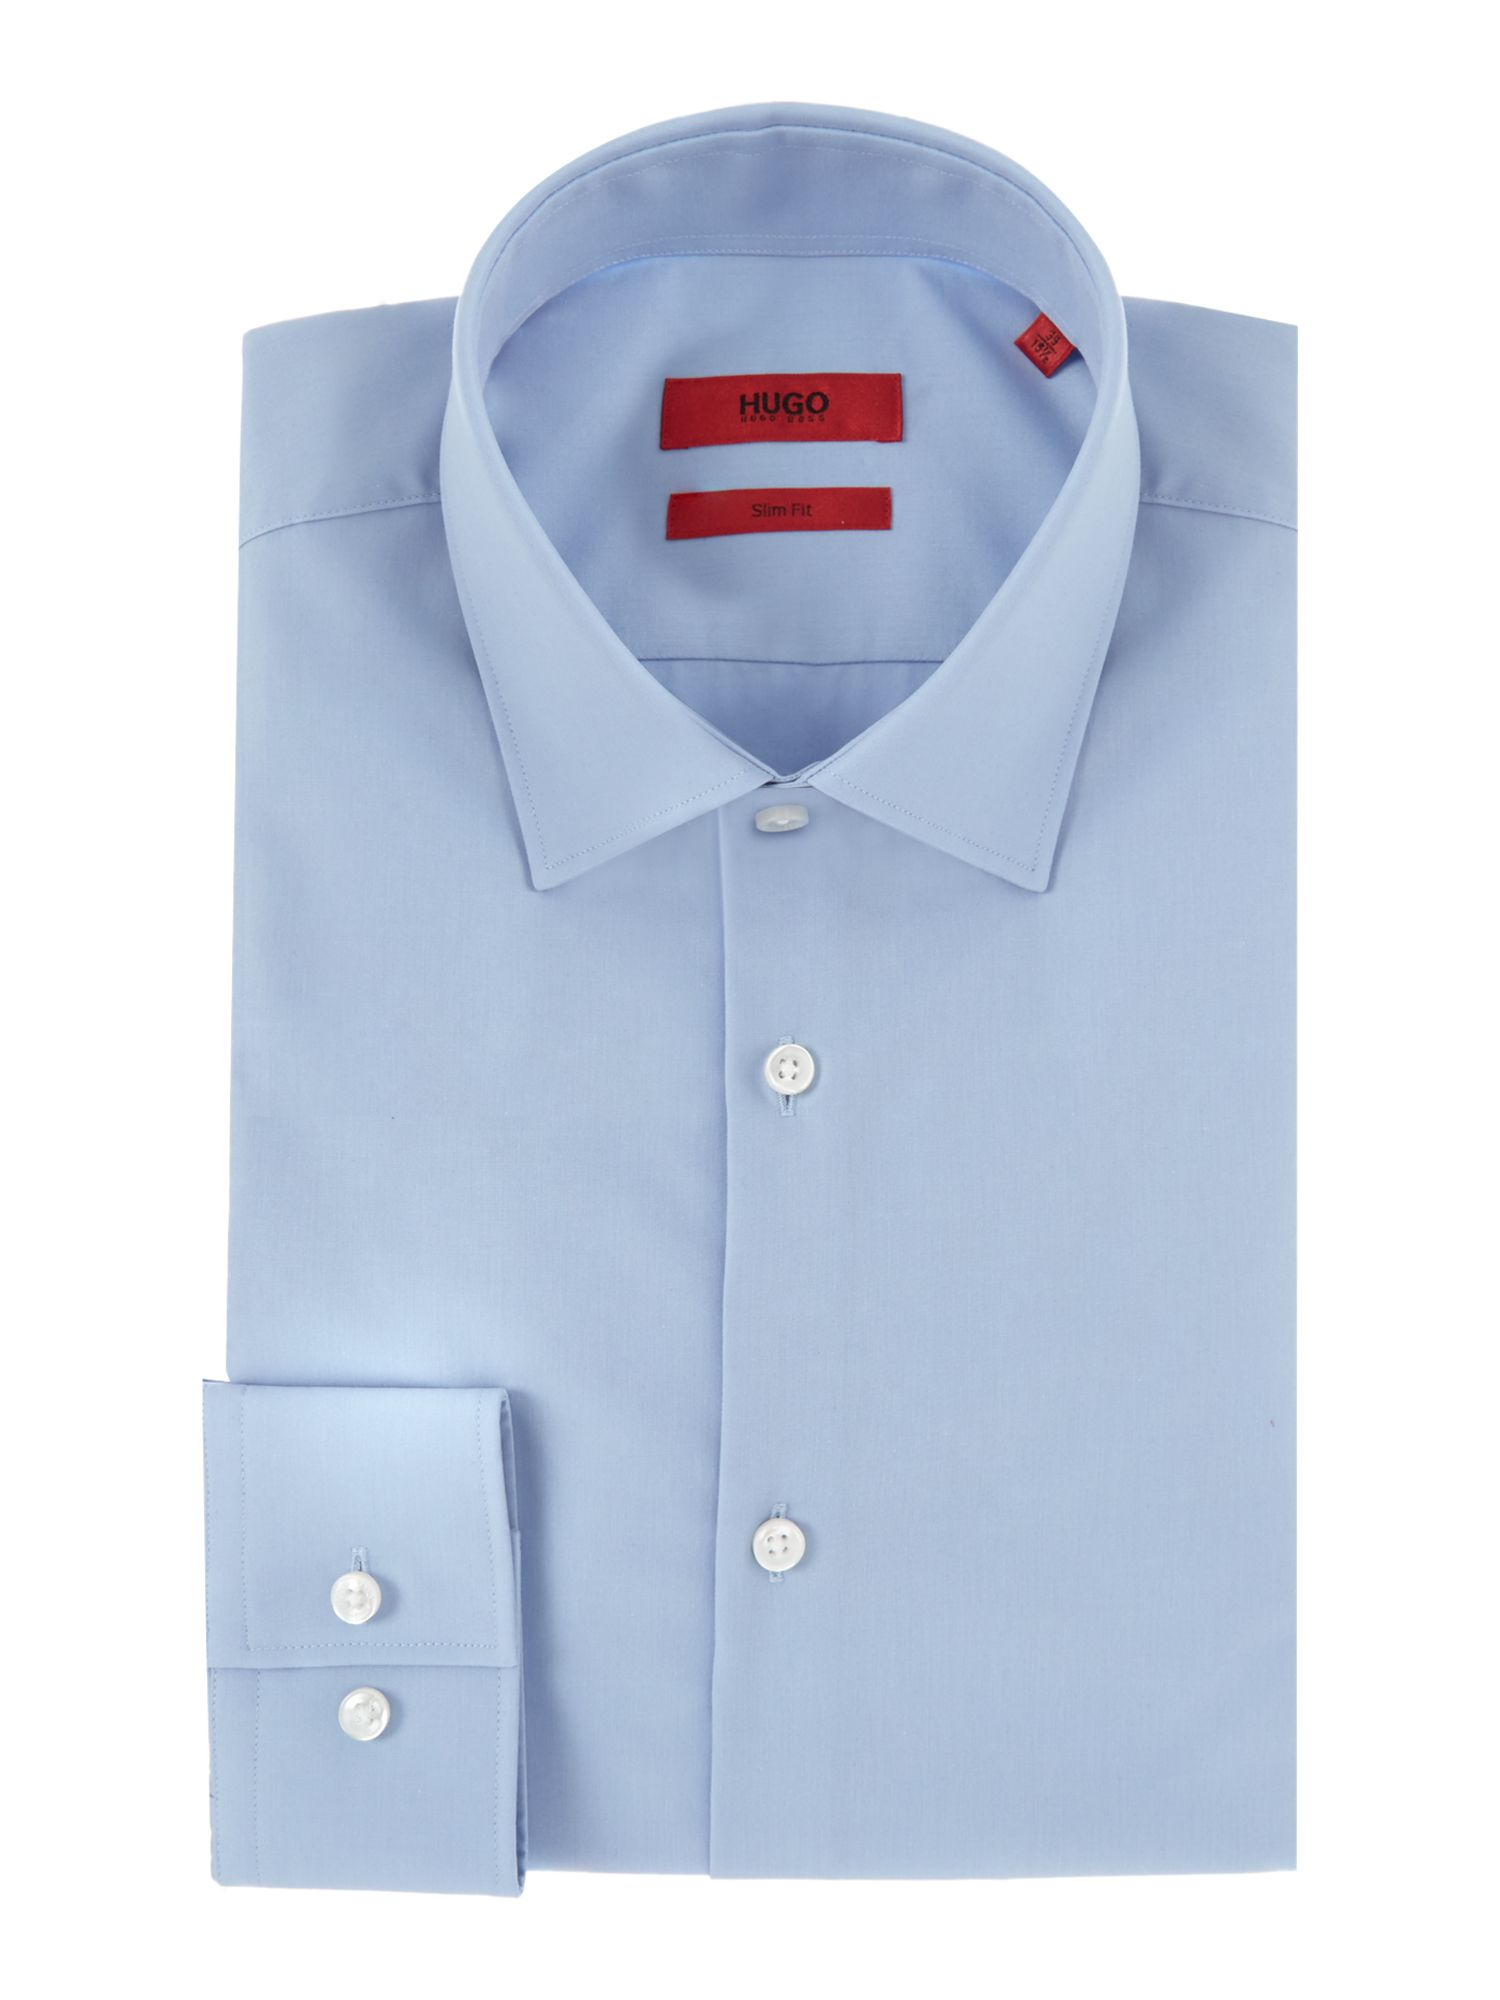 HUGO Men's Hugo Erren Pattern Shirt, Pastel Blue